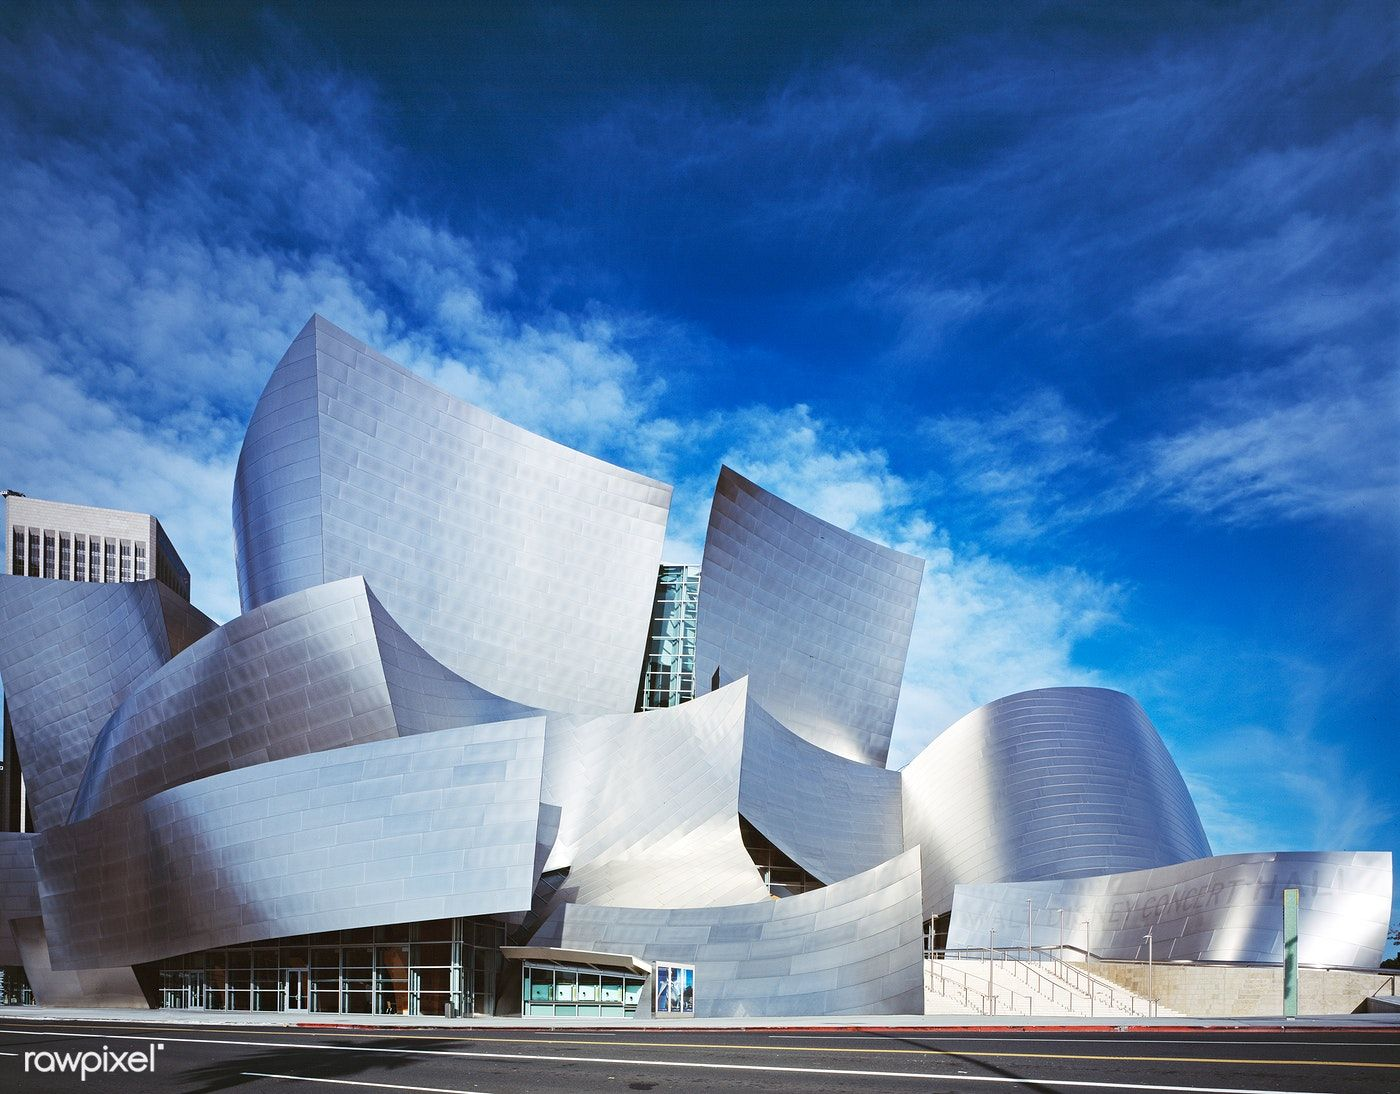 Modernist Architect Frank Gehry S Walt Disney Concert Hall Los Angeles California 2013 In 2020 Gehry Architecture Frank Gehry Architecture Walt Disney Concert Hall